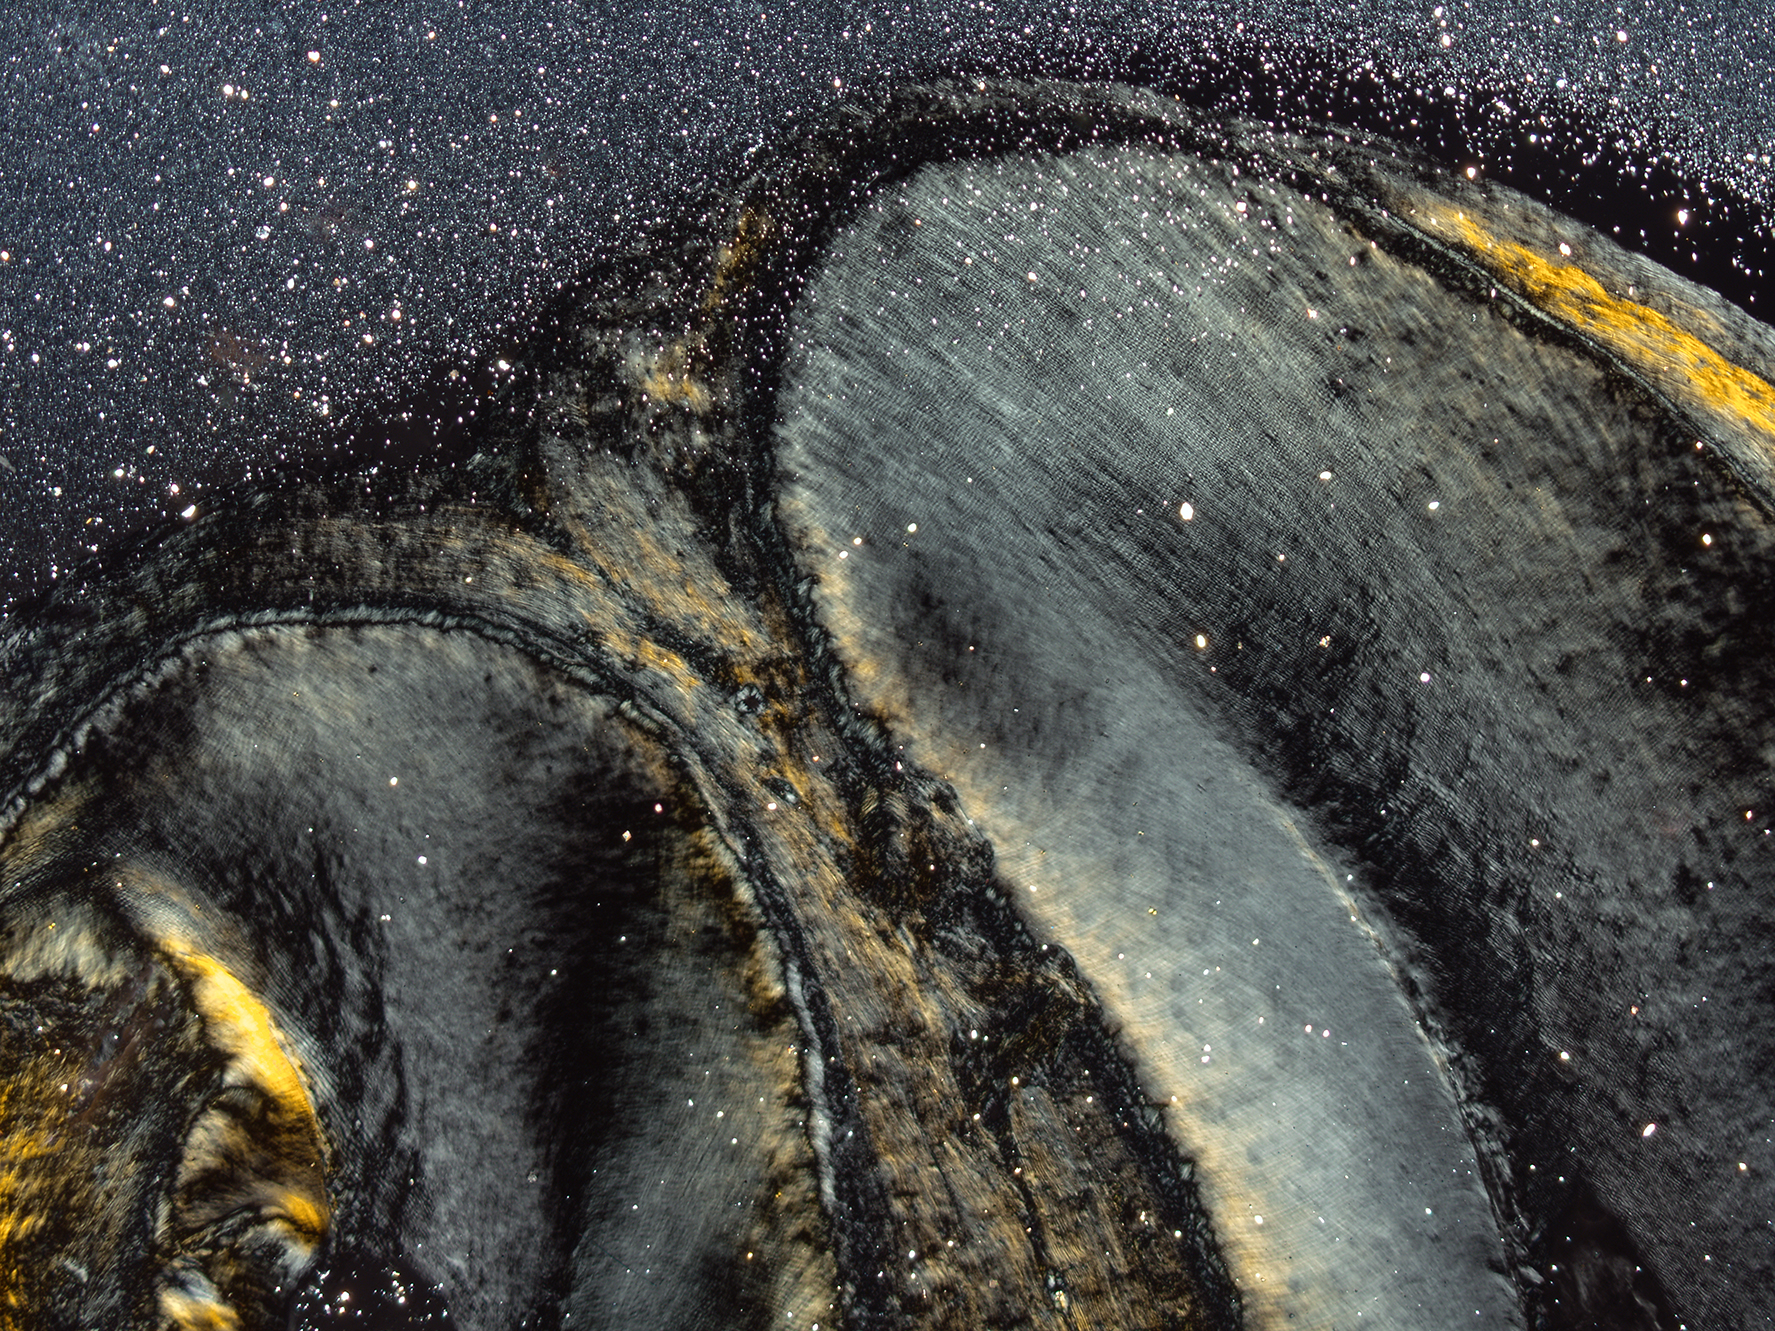 Starry night – Periapical region